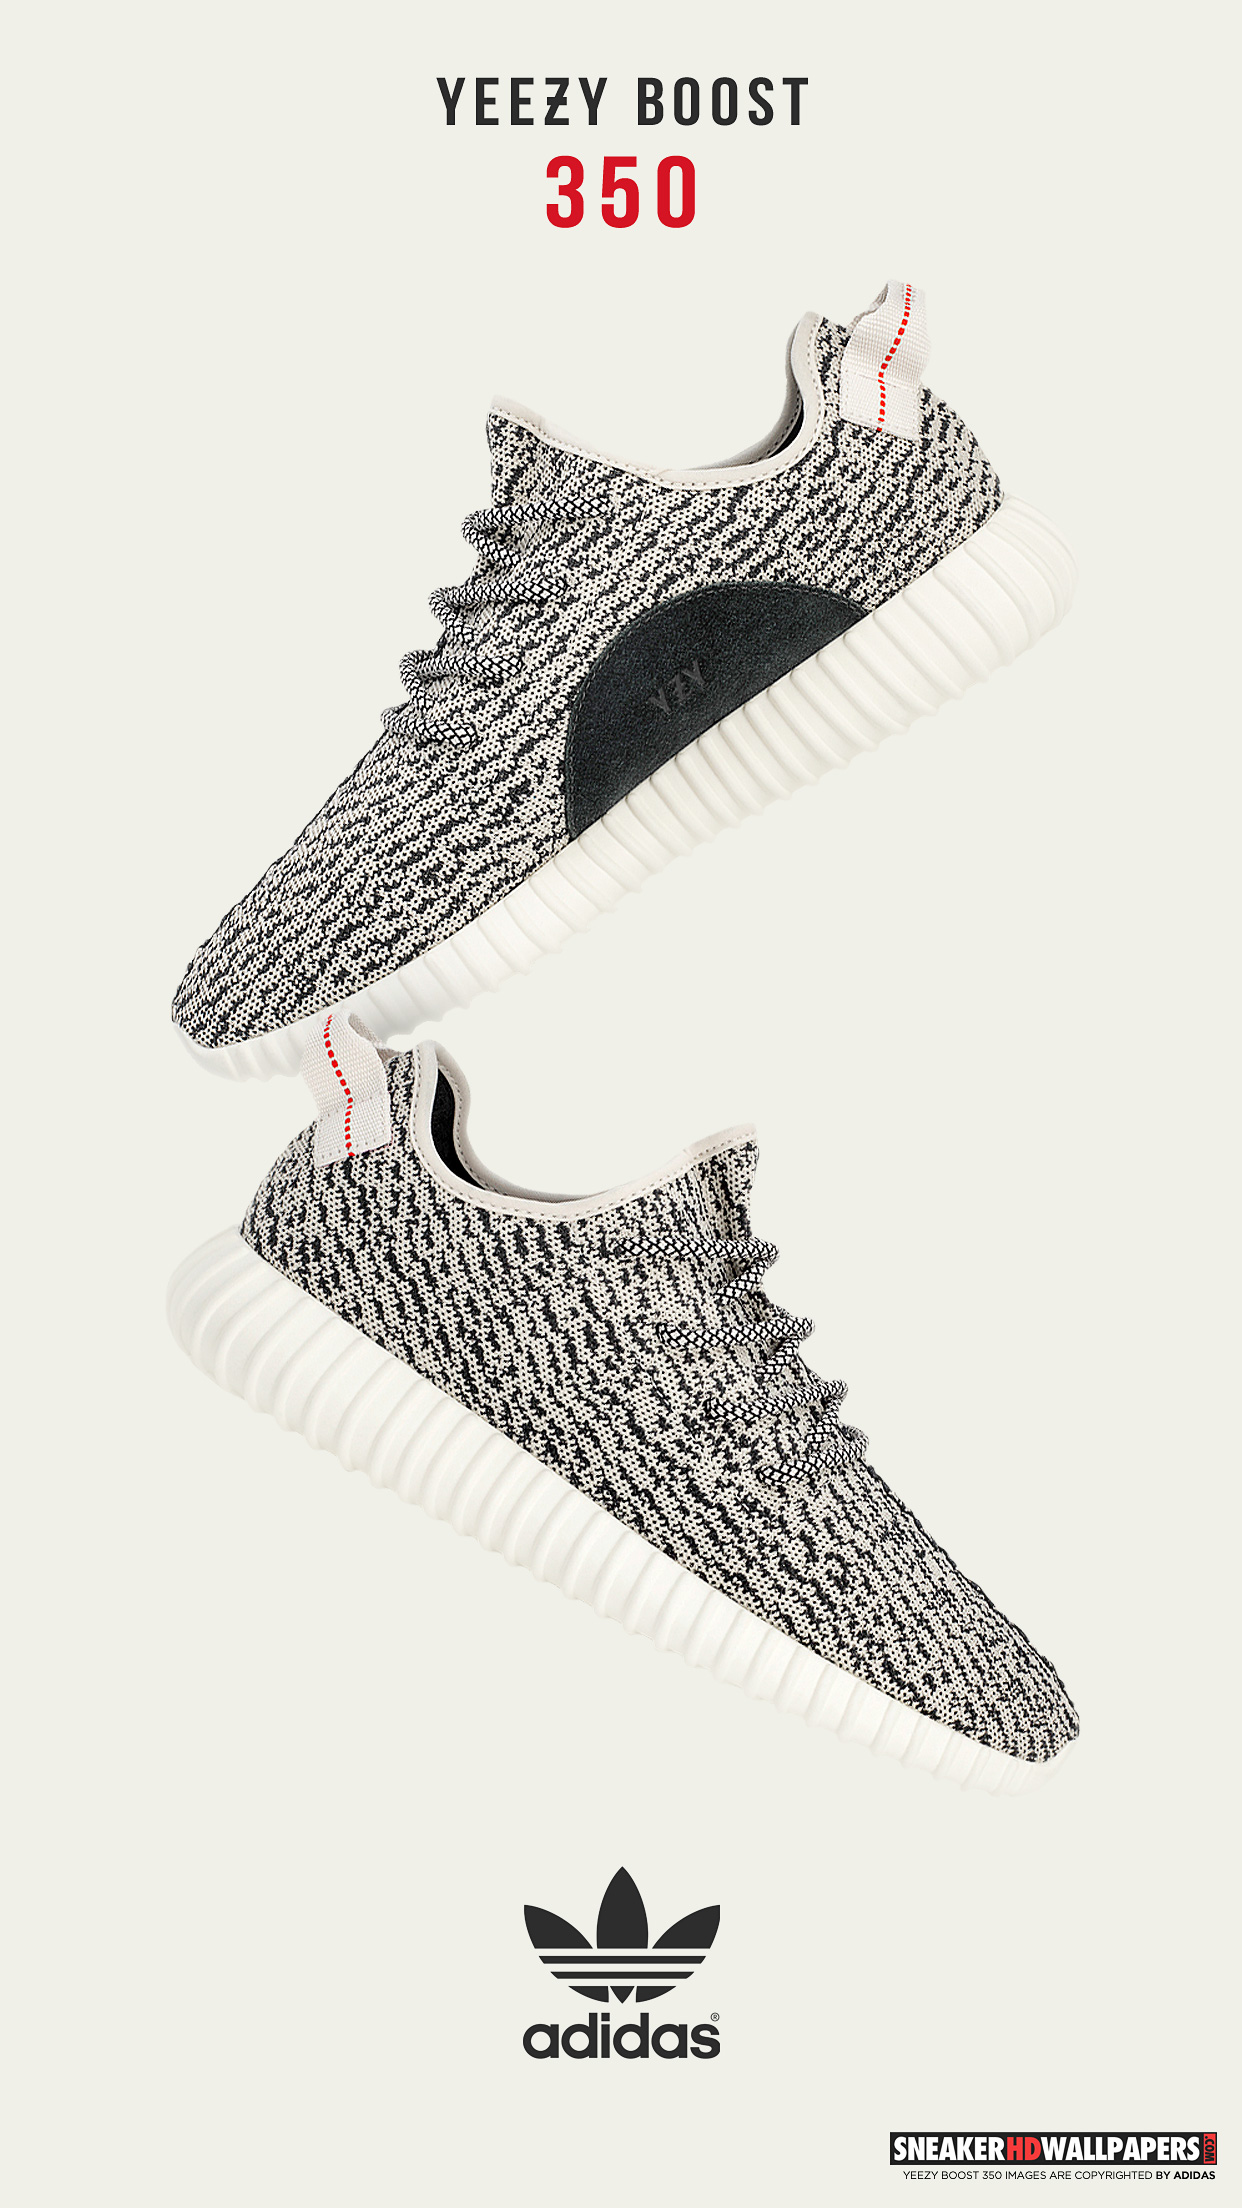 yeezy boost wallpaper wallpapersafari